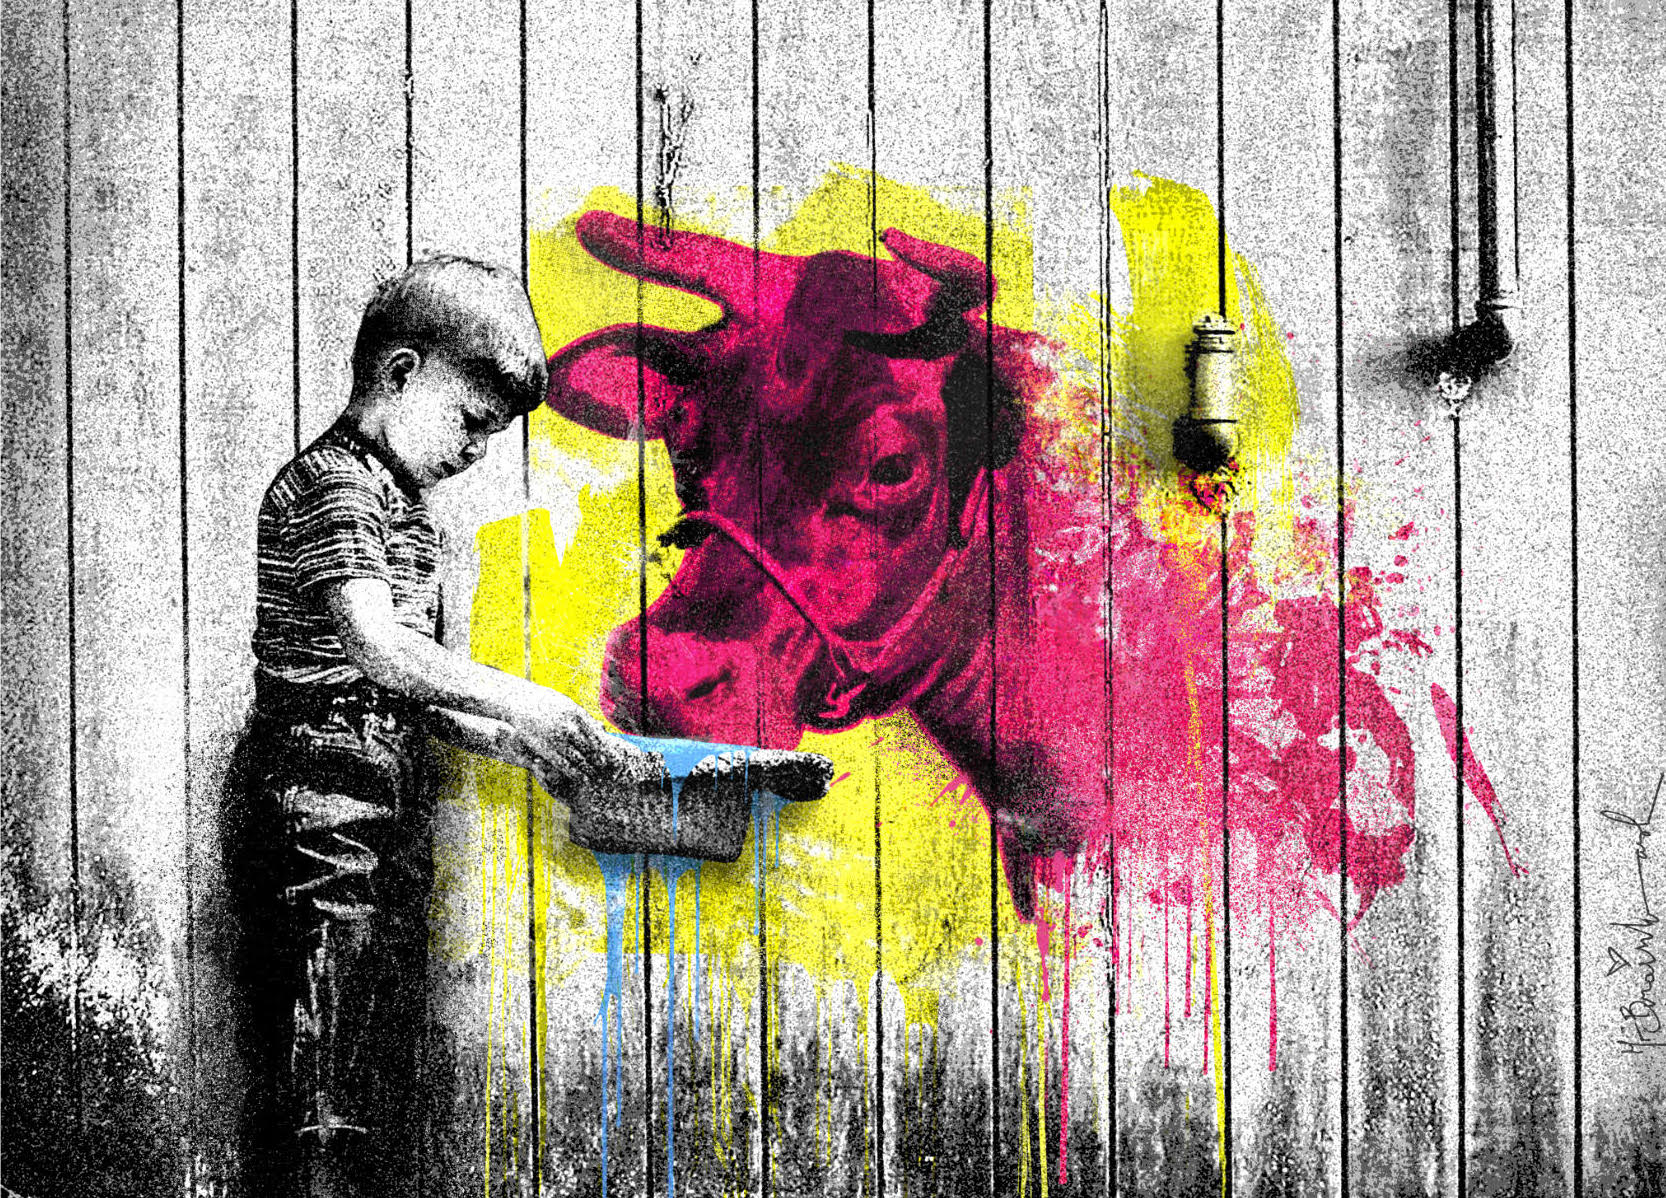 You Get What You Give by Mr. Brainwash